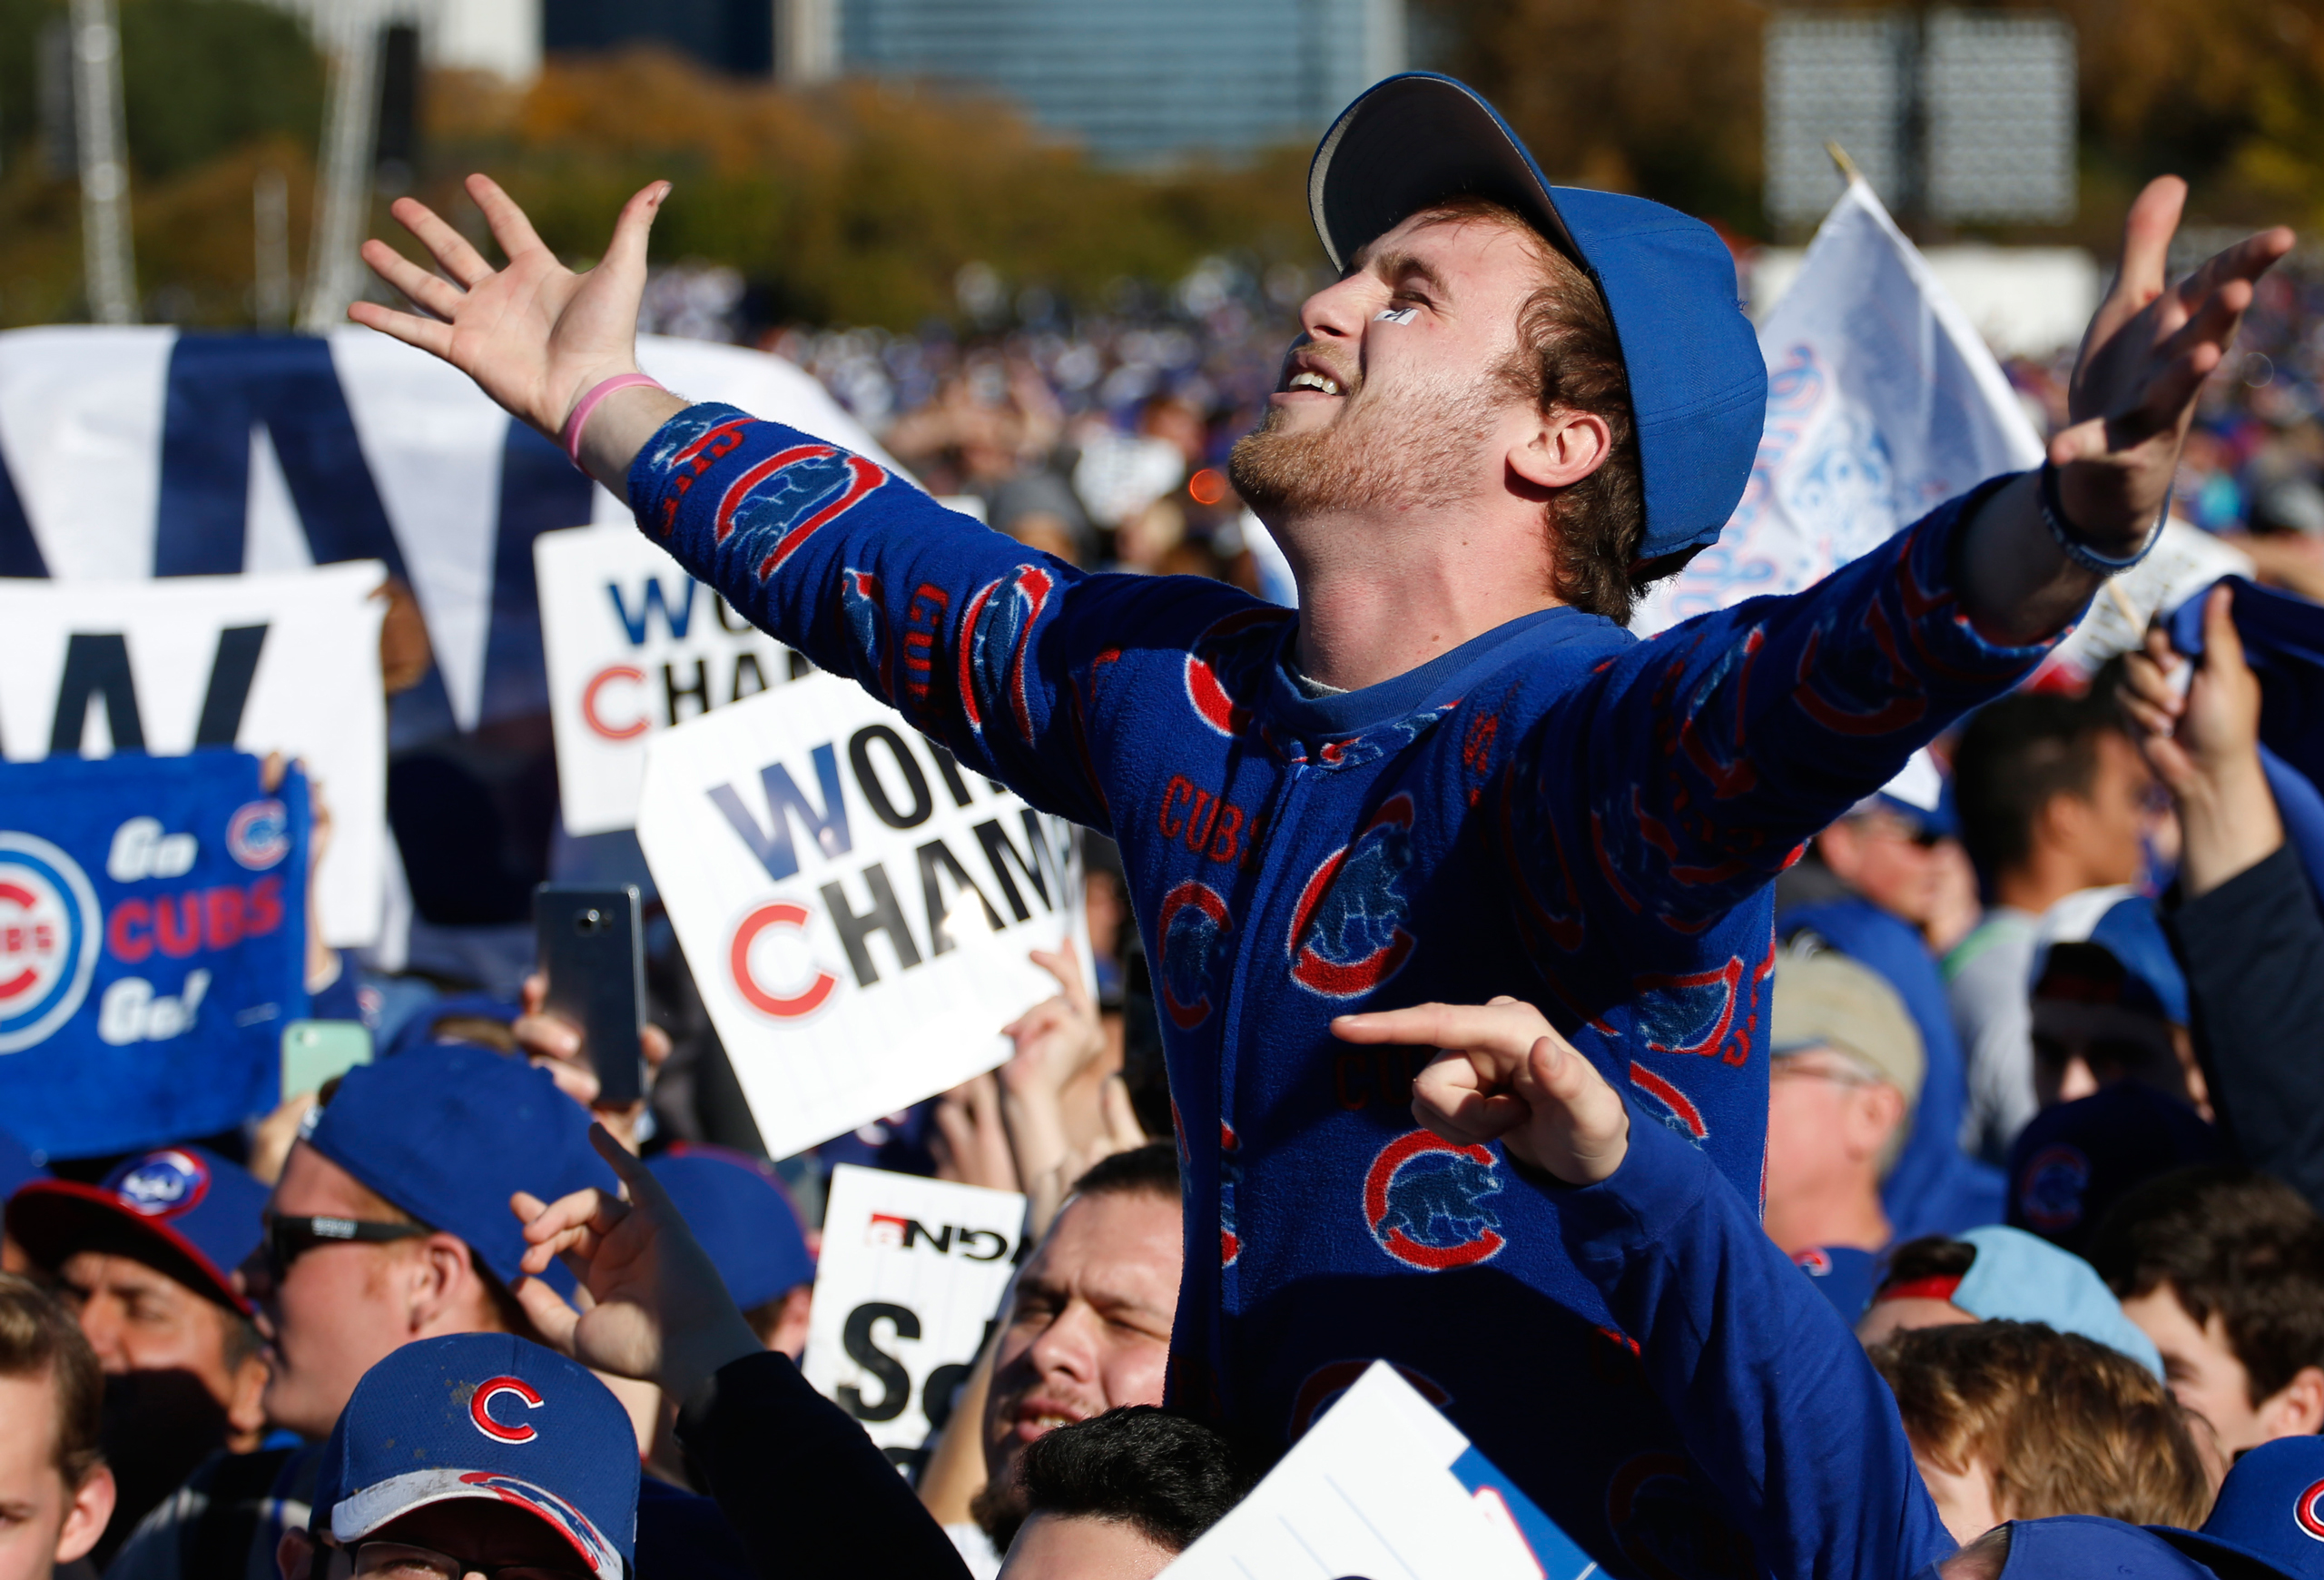 Chicago Cubs fans celebrate before a rally in Grant Park honoring the World Series baseball champions in Chicago on Nov. 4, 2016.